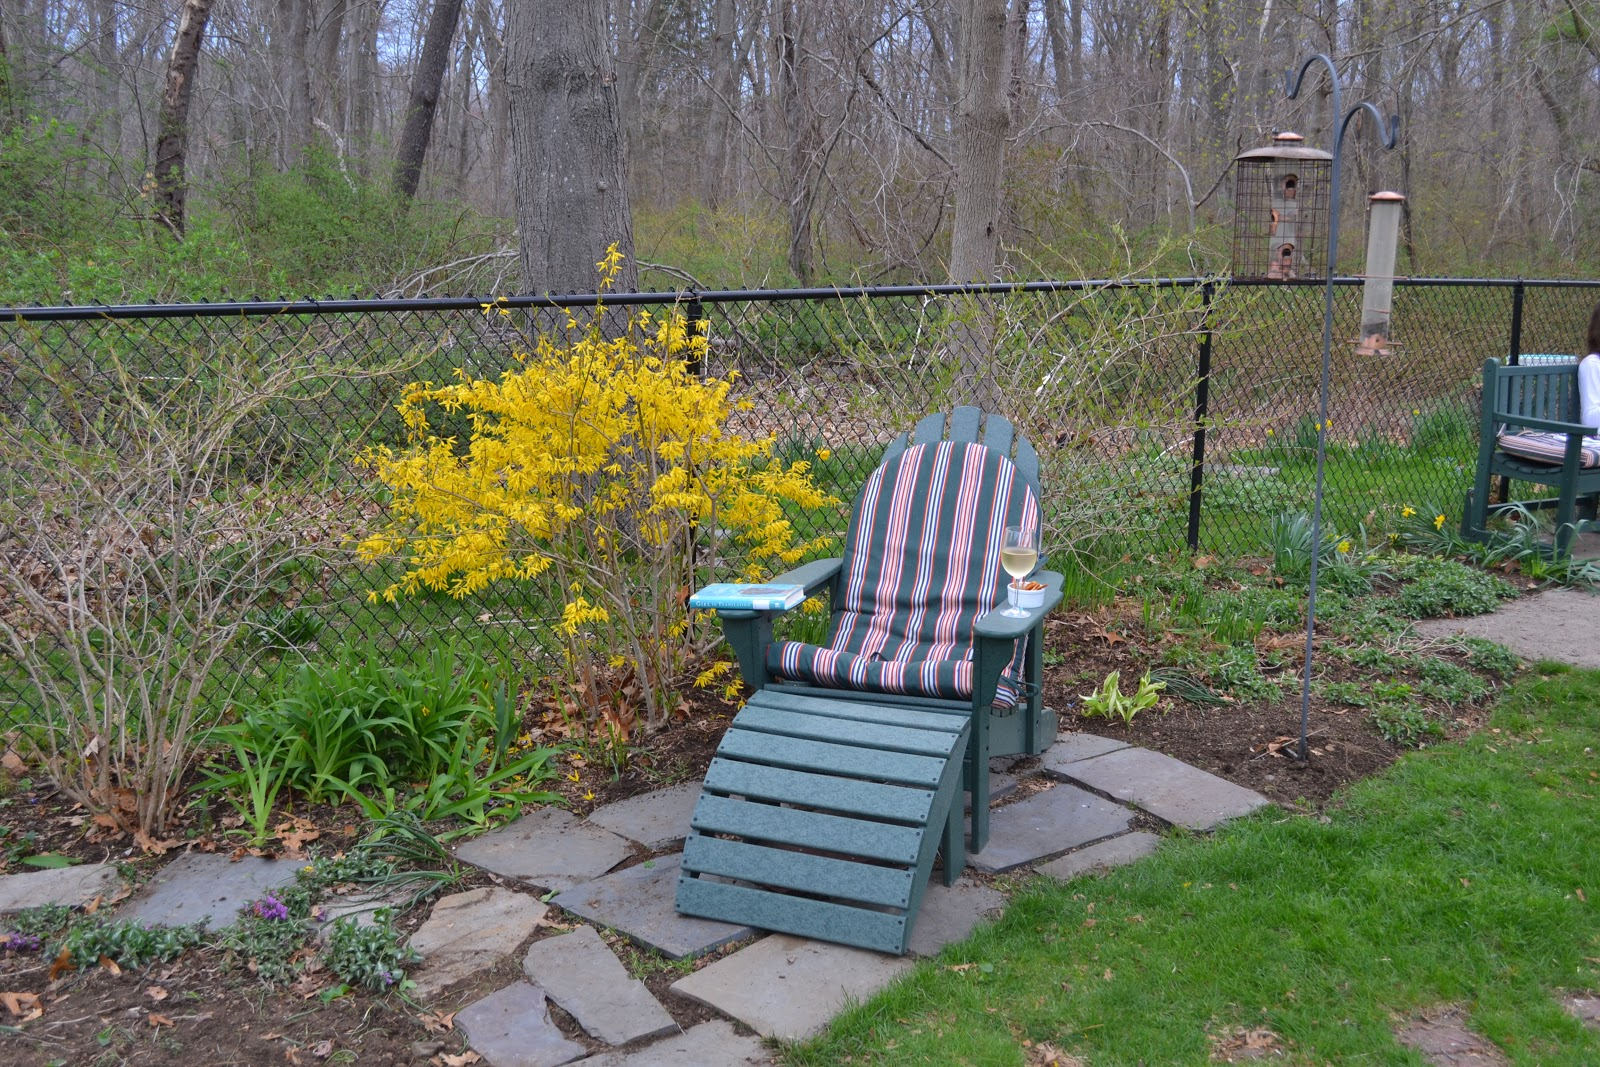 After a couple of hours of work I treated myself to a half hour of reading   sweet potato chips and a glass of wine in my favorite garden spot. Sacred Ordinariness  April 2011